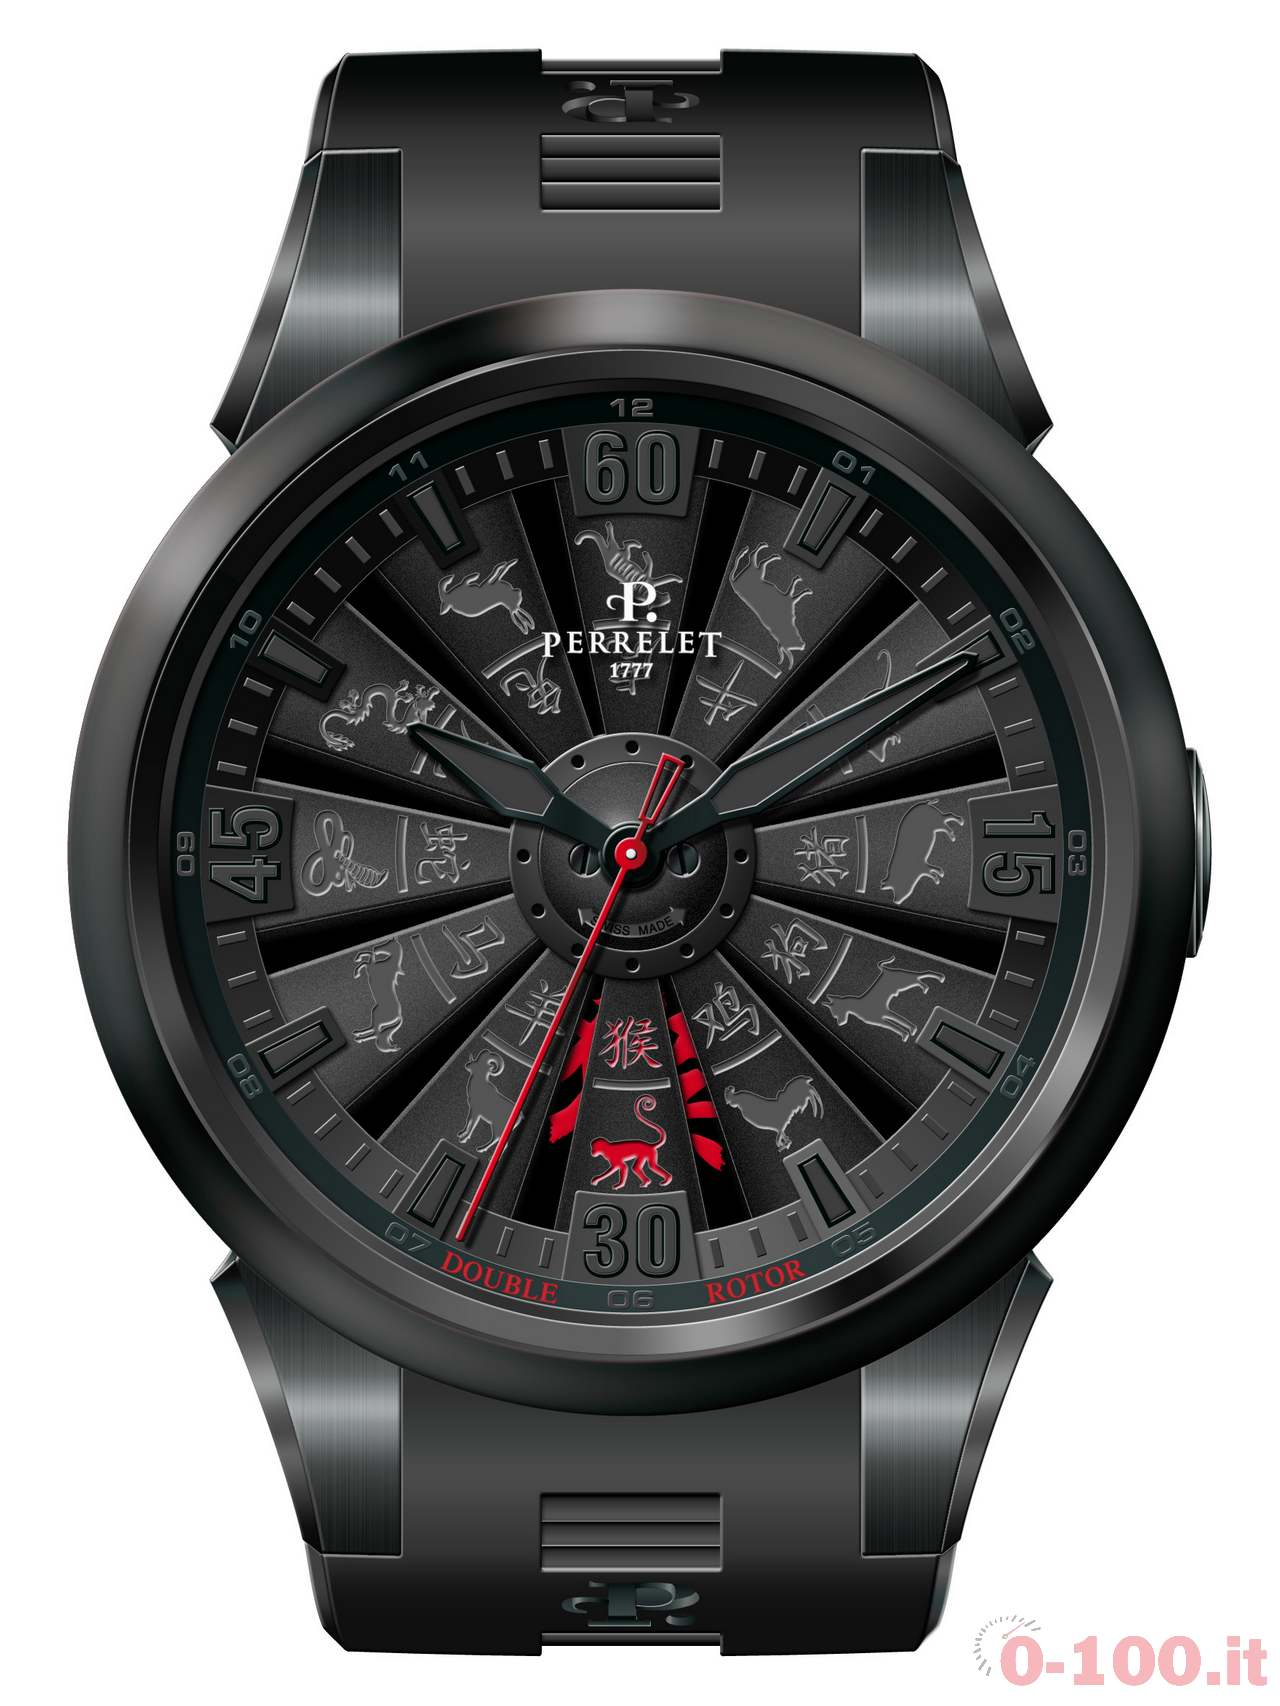 perrelet-turbine-monkey-limited-edition-ref-a10971prezzo-price_0-1003